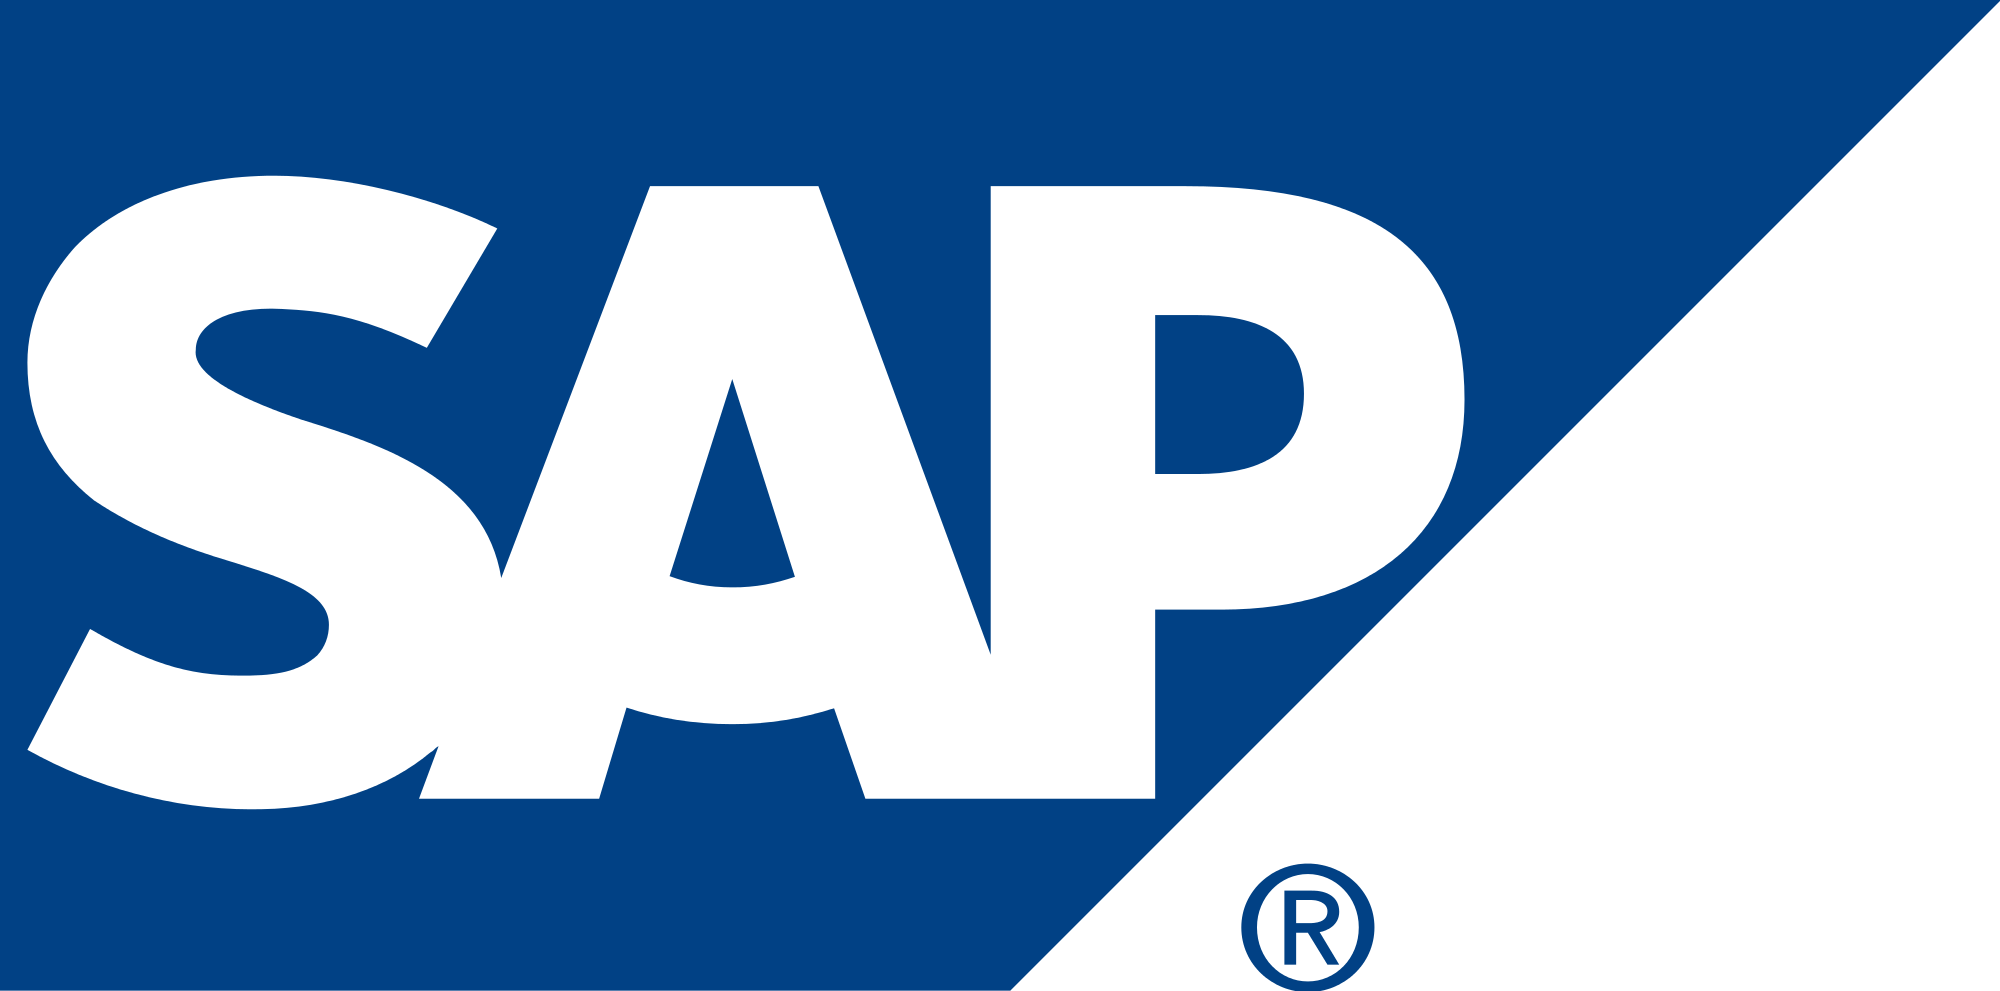 SAP logo integration